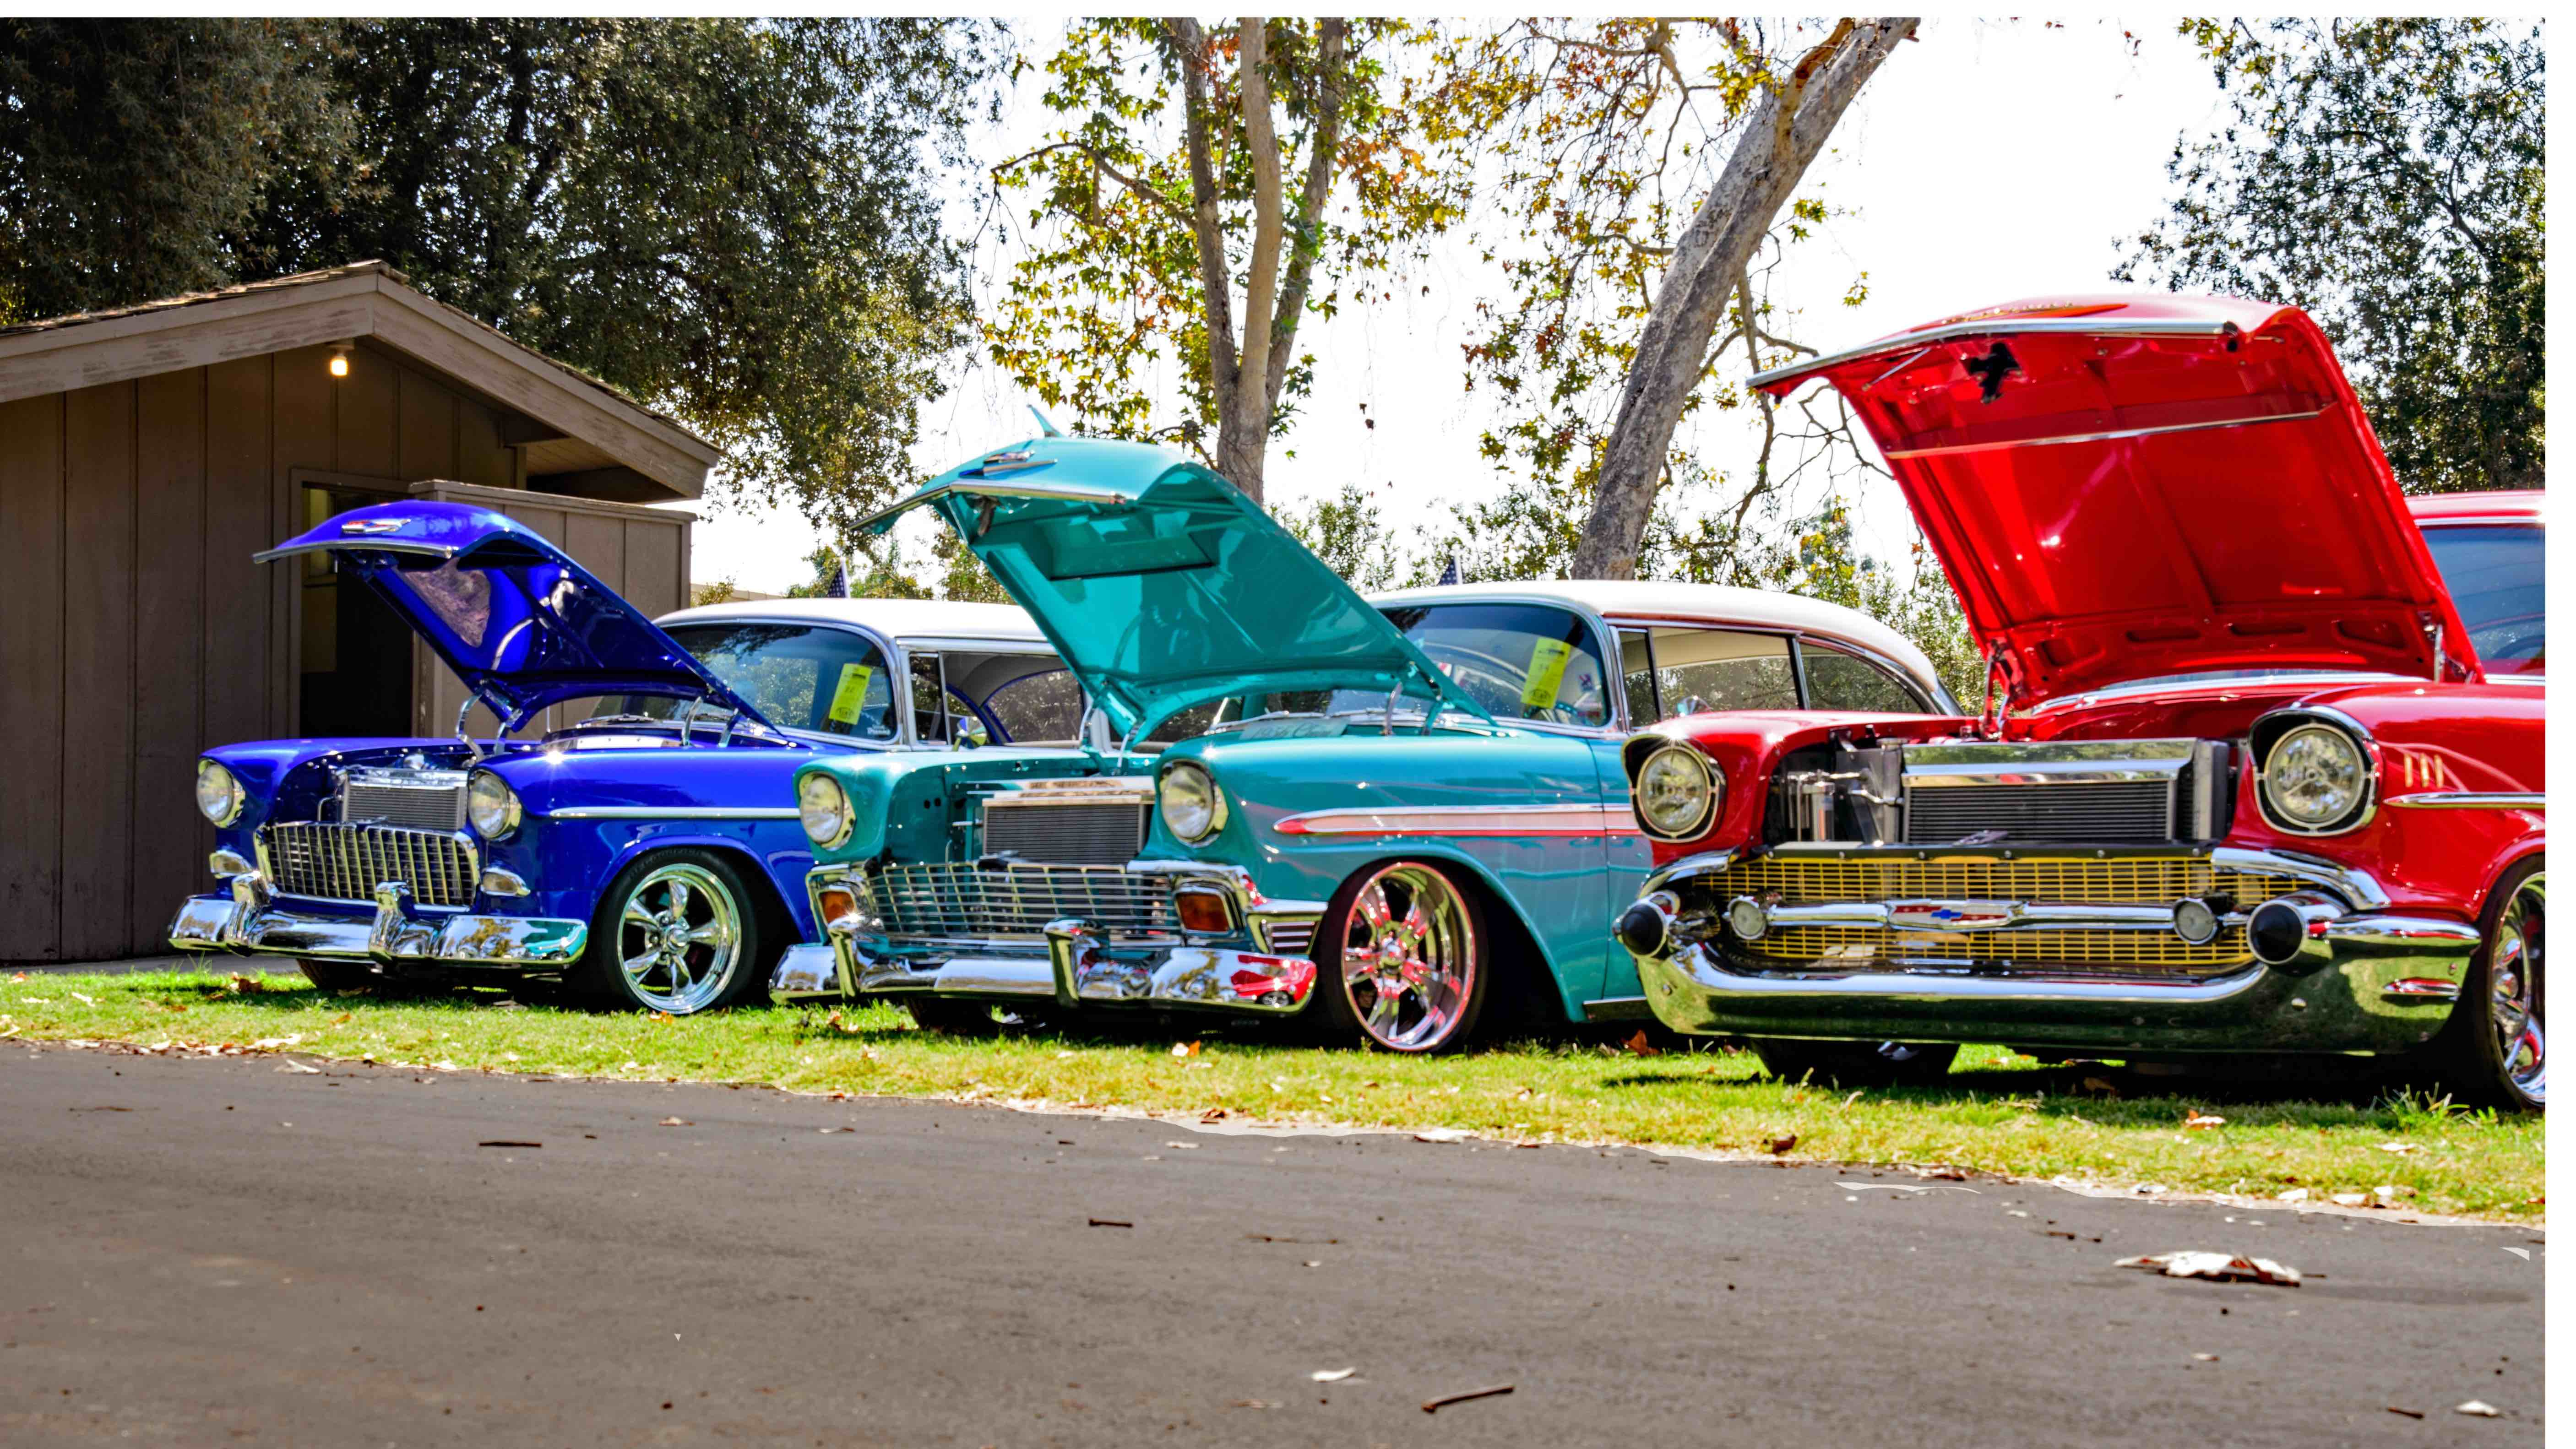 Colourful classic cars with the hoods open.